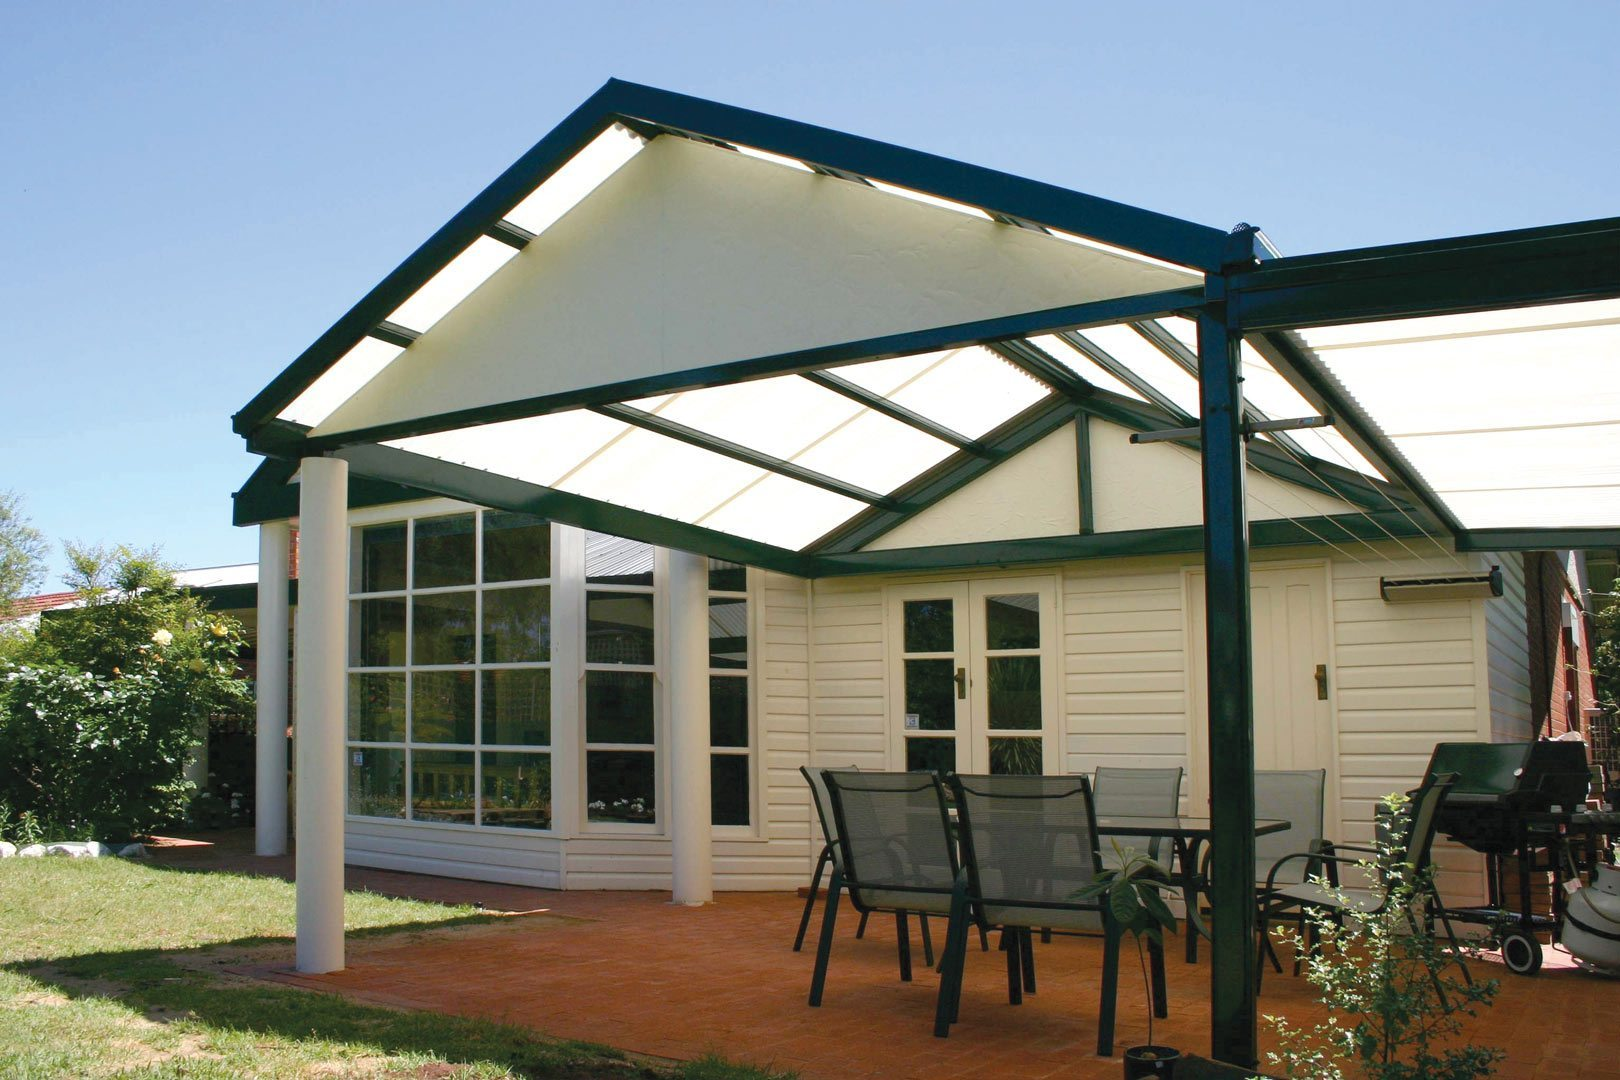 Pitched roof carport and verandah wholesalers for Carport roof pitch